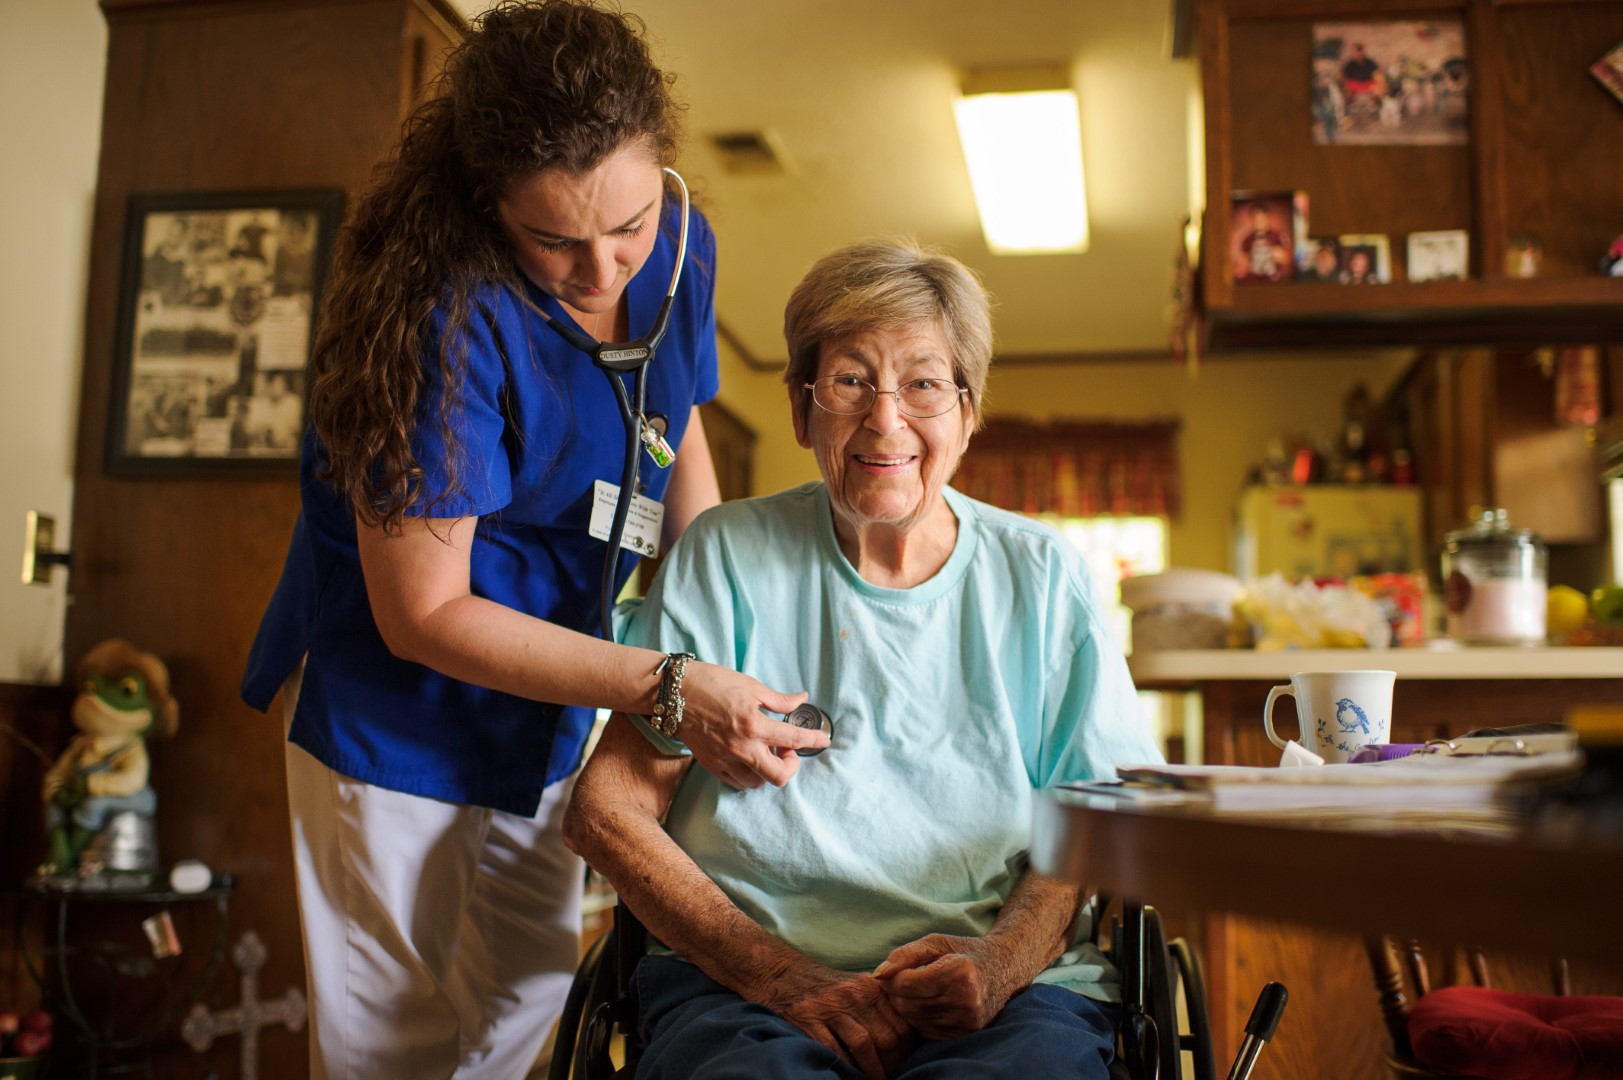 13 Signs Your Cardiology Patients May Benefit from Home Health